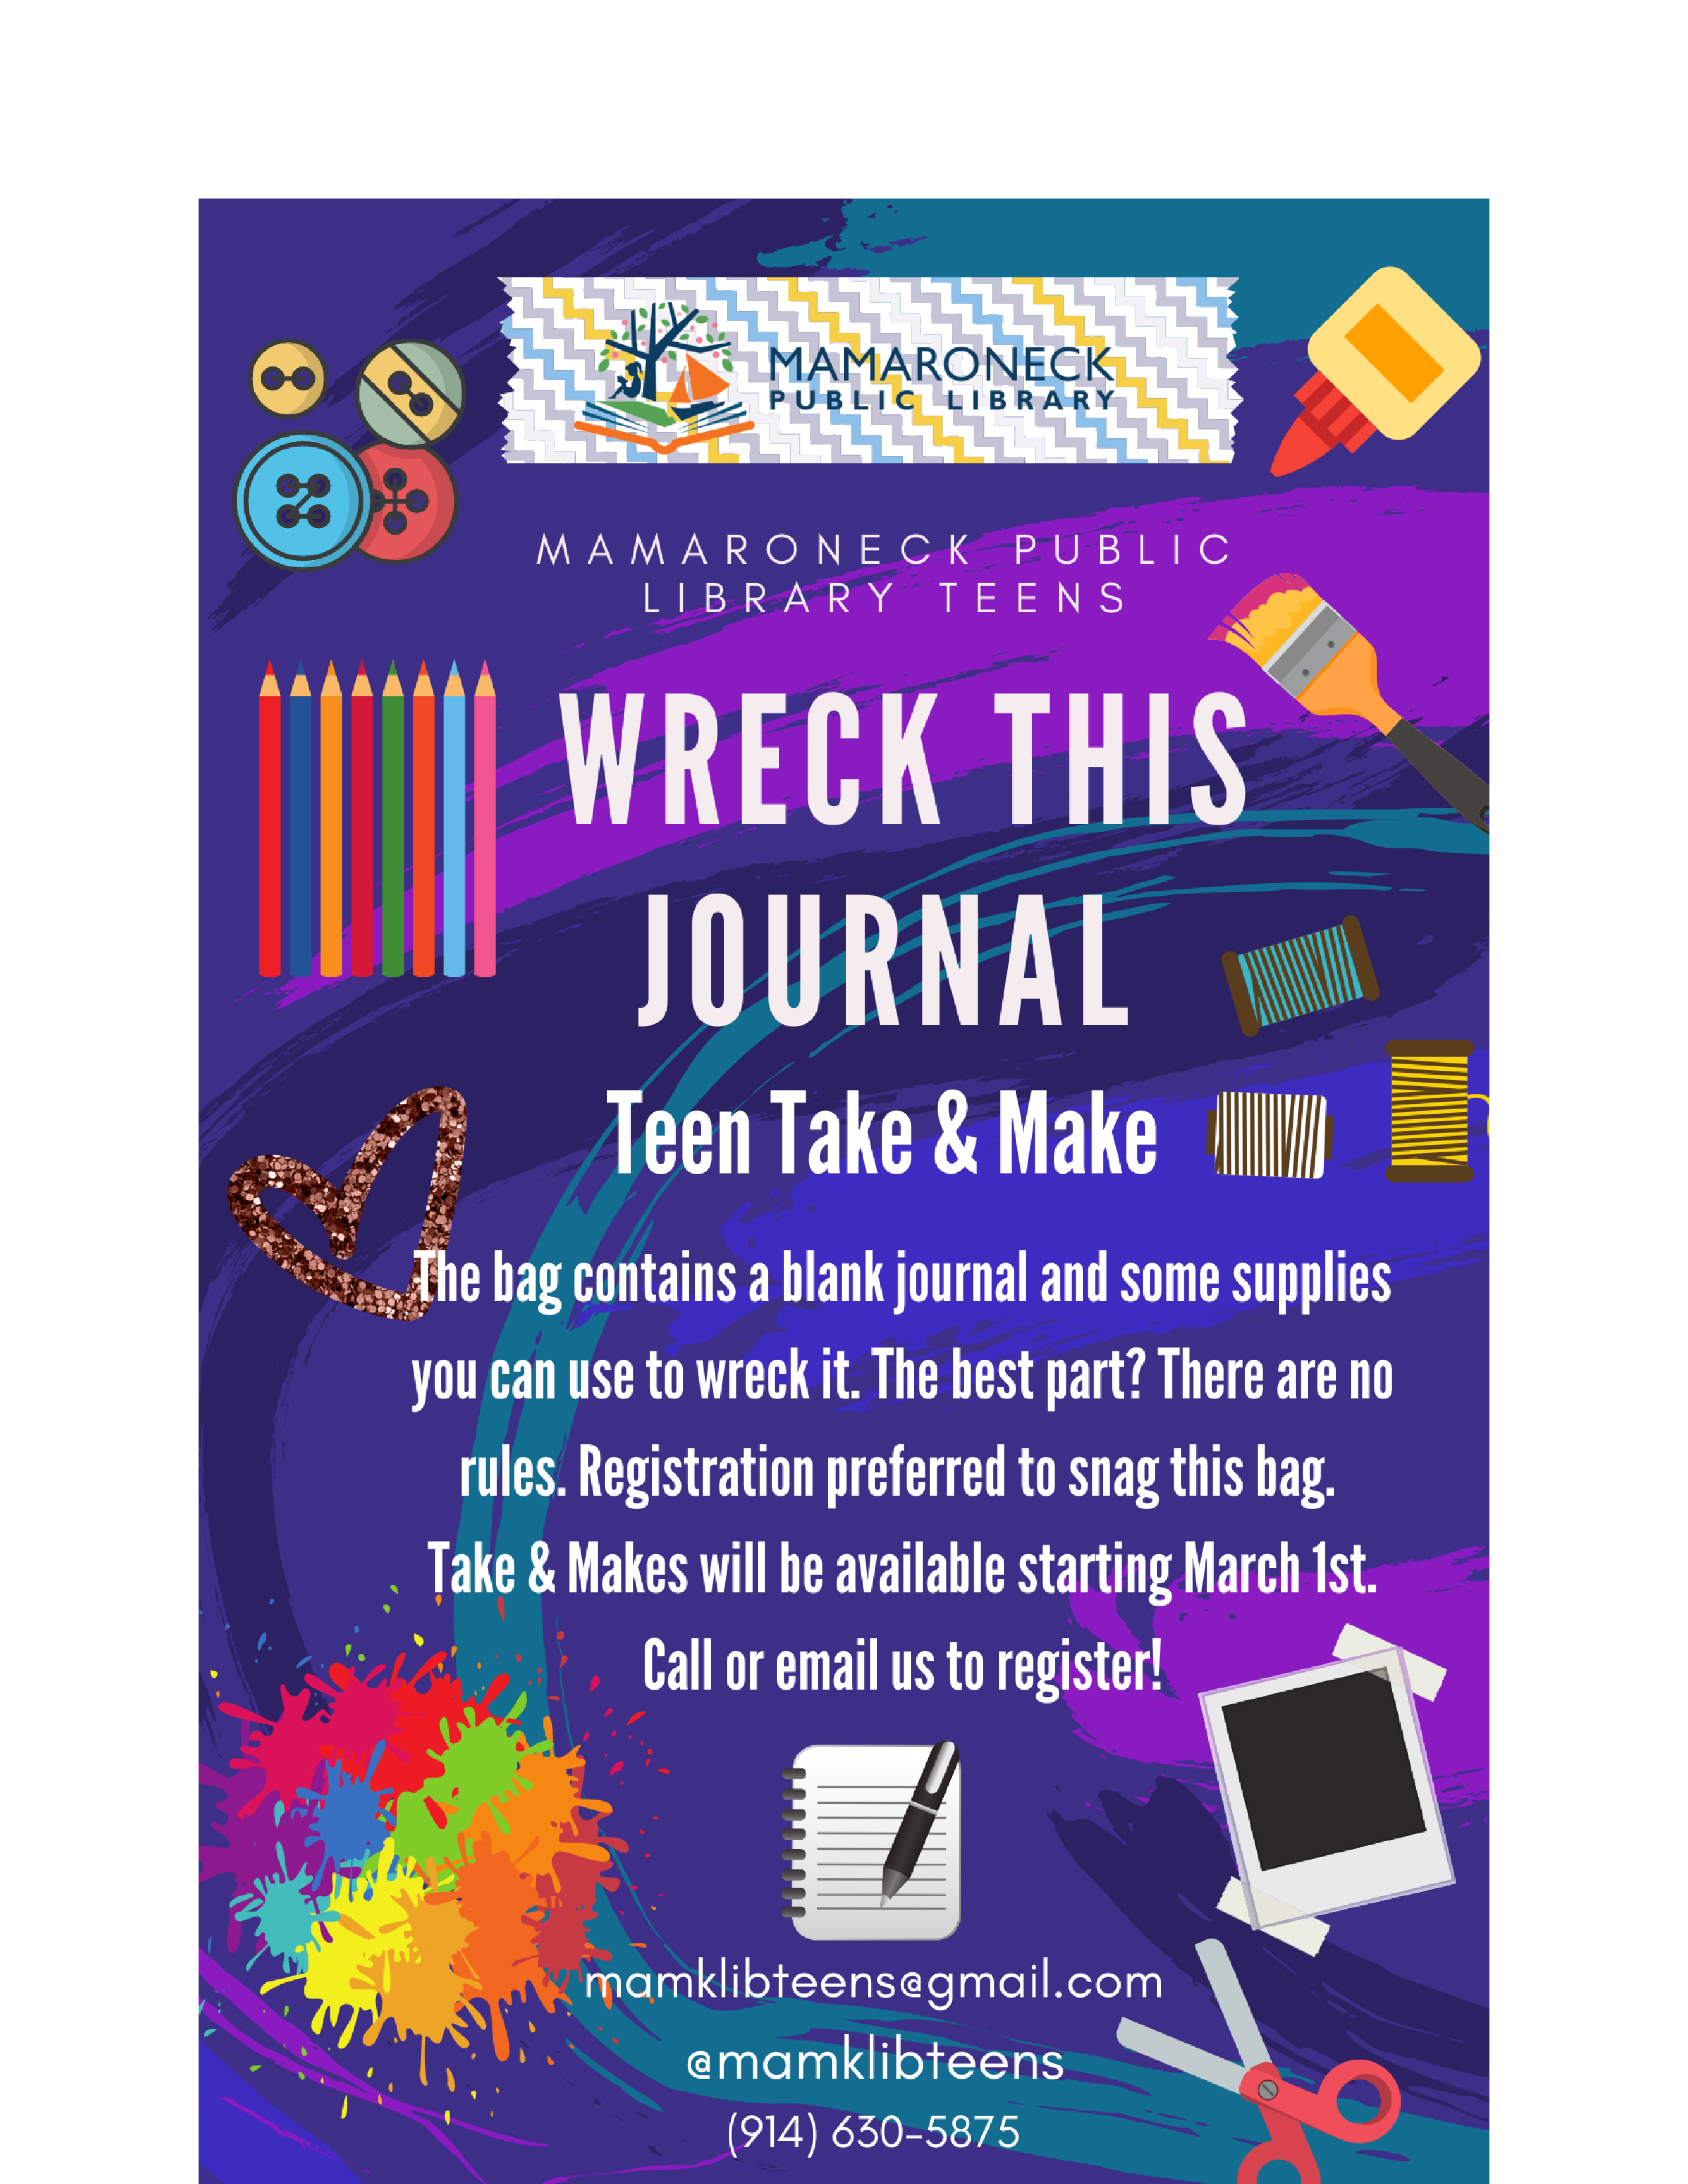 Wreck This Journal - Teen Take & Make